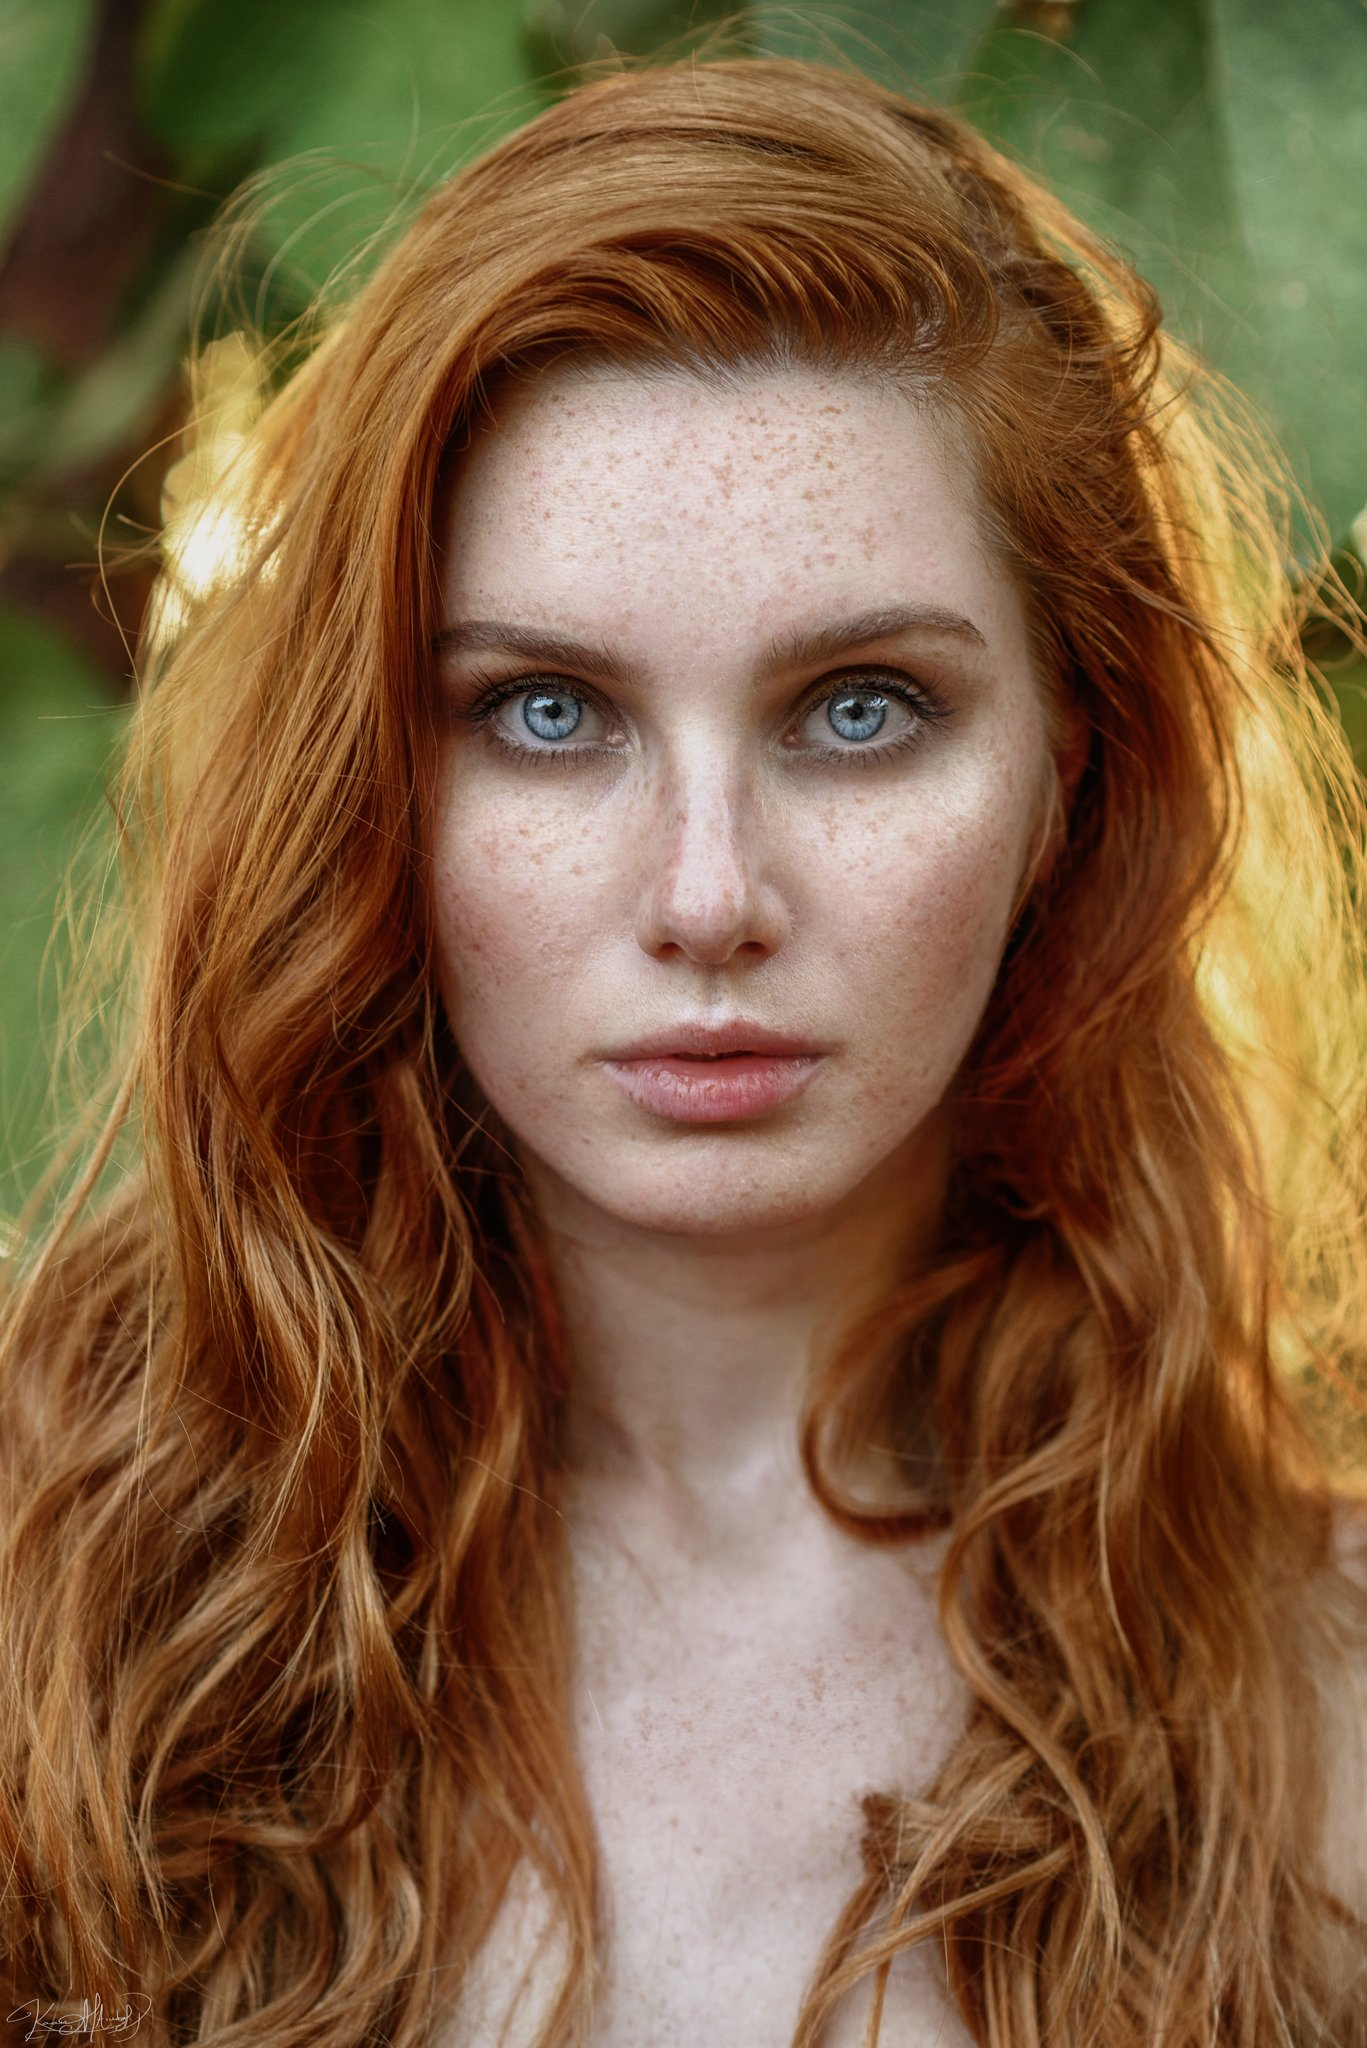 portrait, eyes, freckles, ginger, redhead, pretty, girl, red, yellow, natural, light, sunlight, beautiful, istanbul, face, hair, beauty, nikon, 85mm, Каан Алтындал